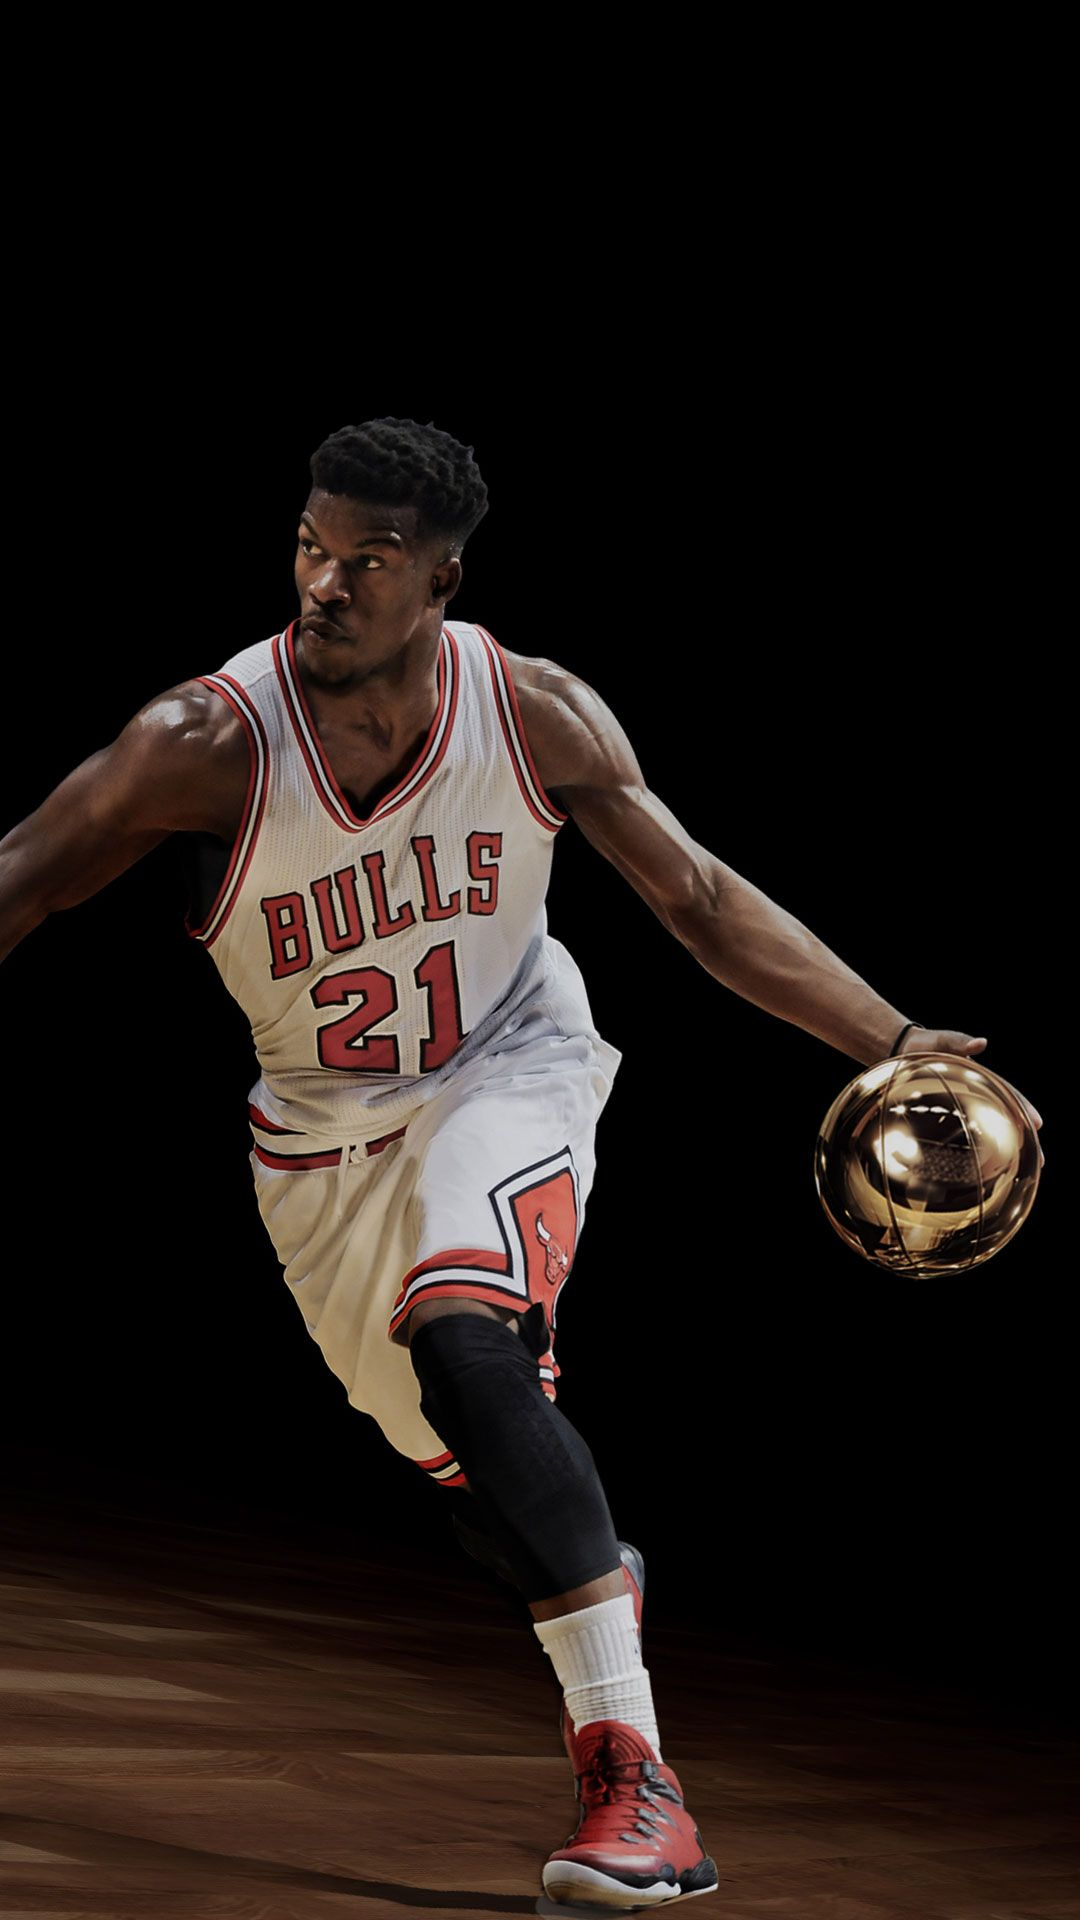 Jimmy Butler Wallpaper For Iphone 6 Plus Sports Wallpaper for 1080x1920